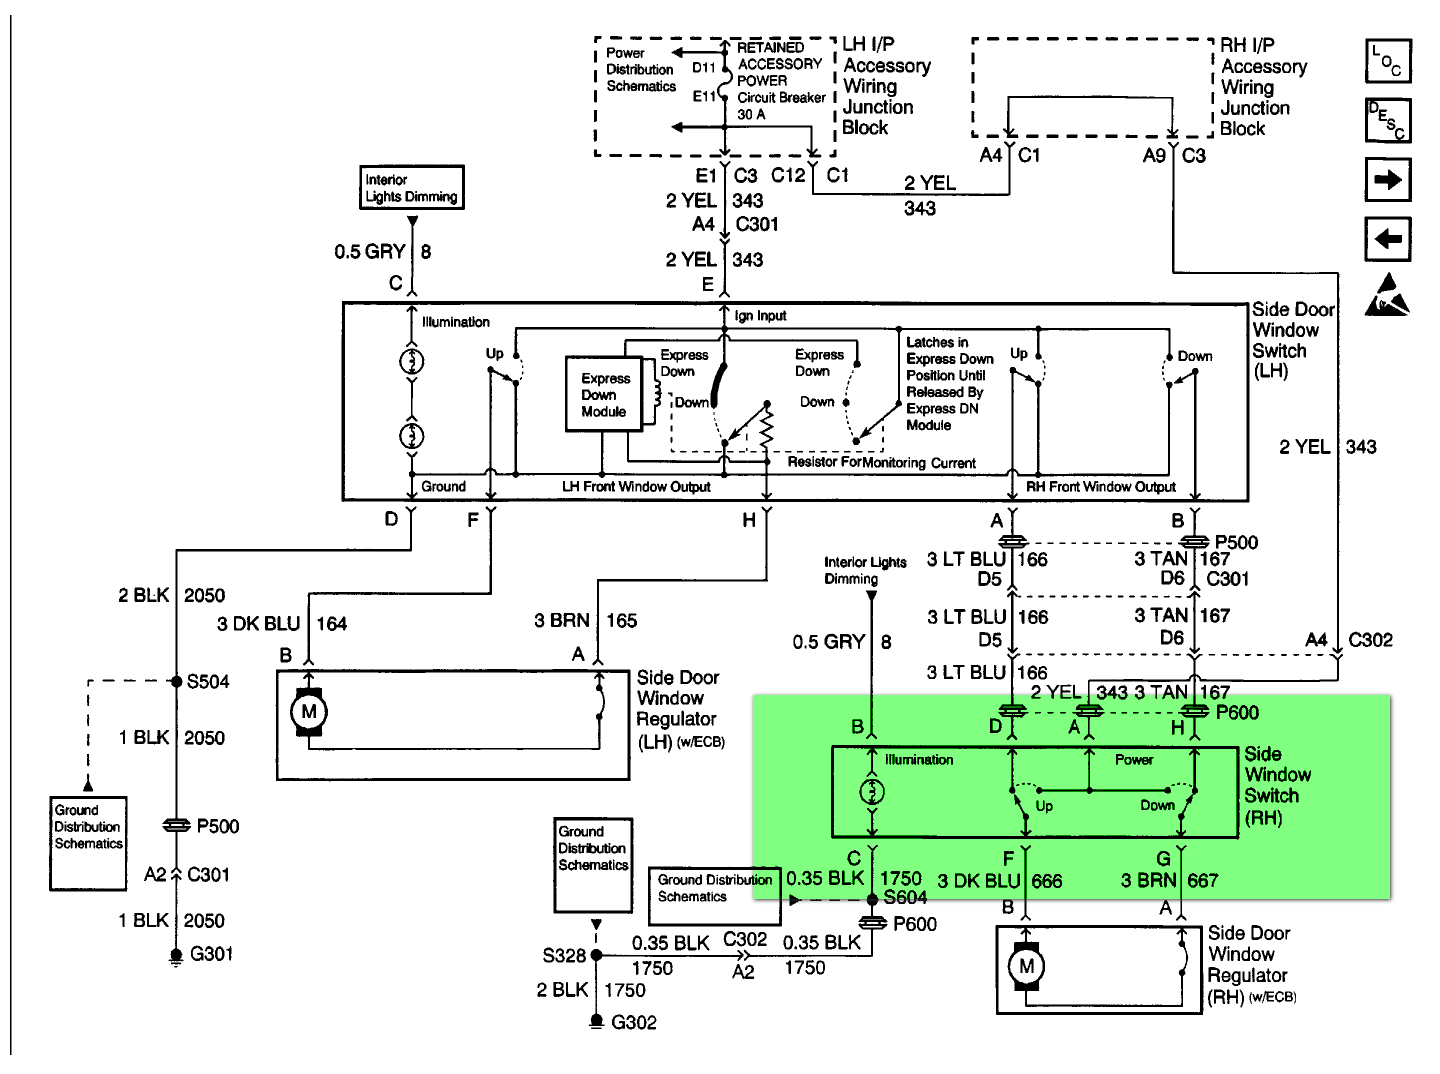 2001 Chevy Silverado Wiring Schematic | Wiring Schematic ... on